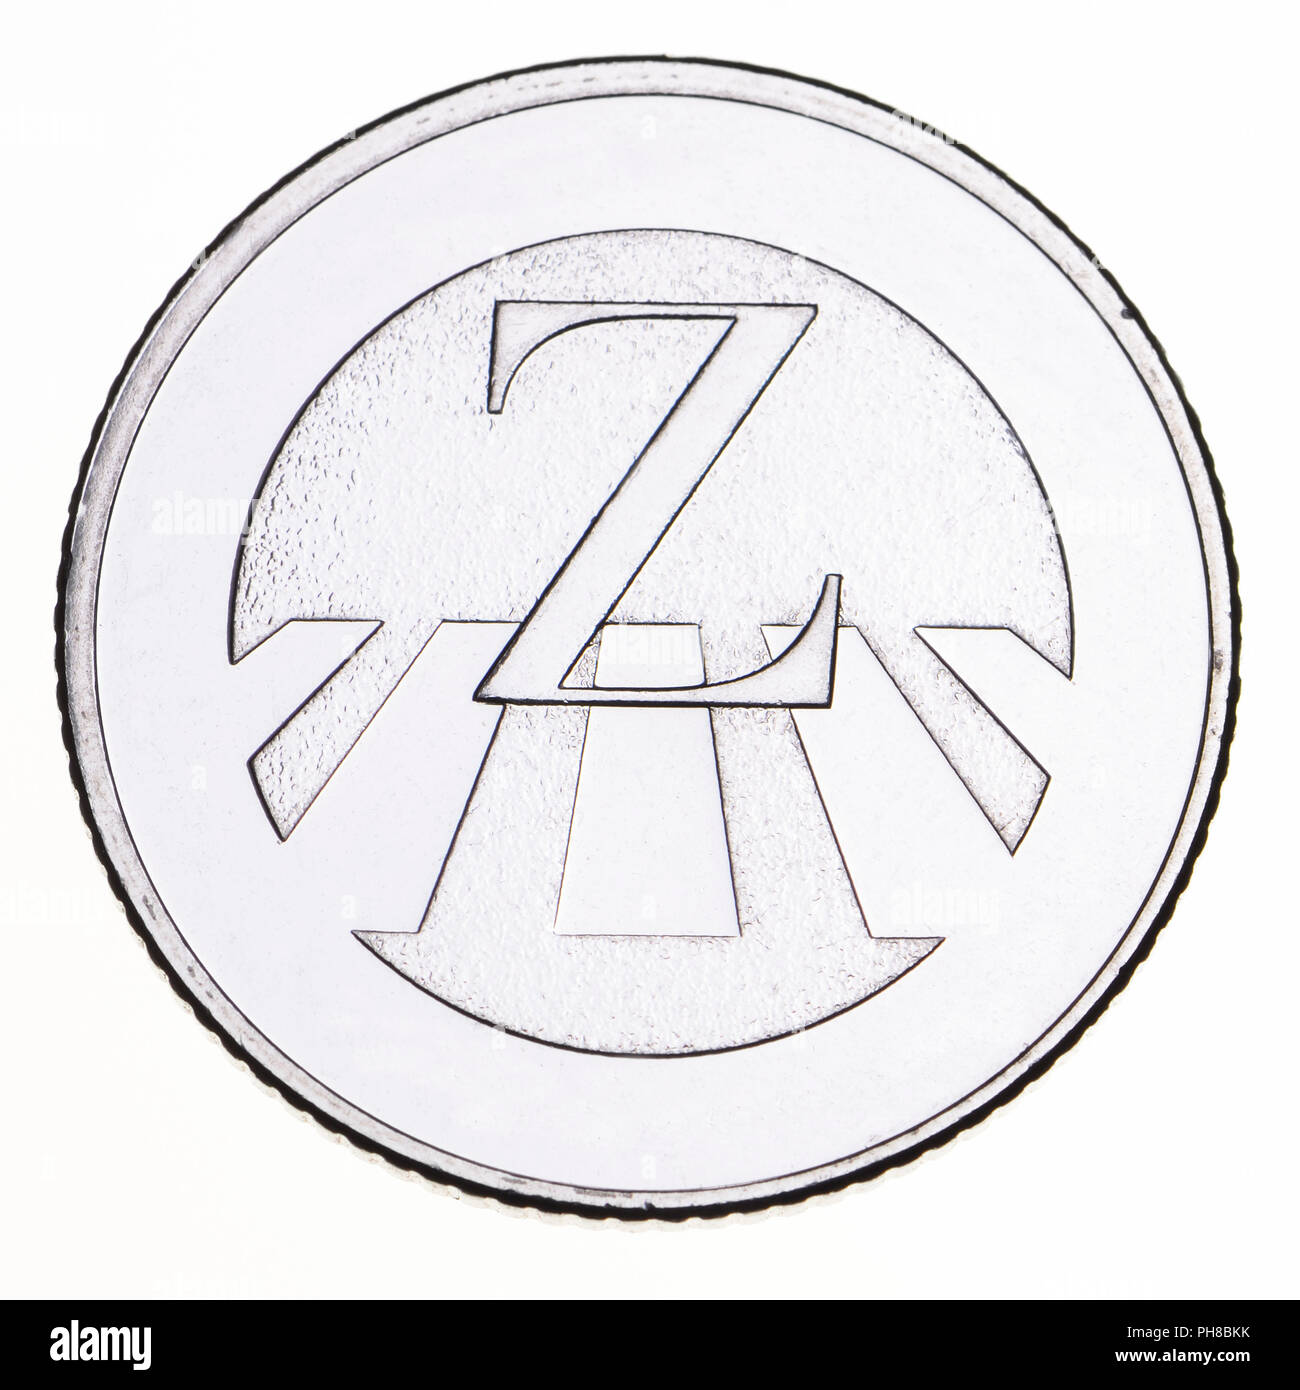 British 10p coin (reverse) from 2018 'Alphabet' series, celebrating Britishness. Z - Zebra Crossing Stock Photo